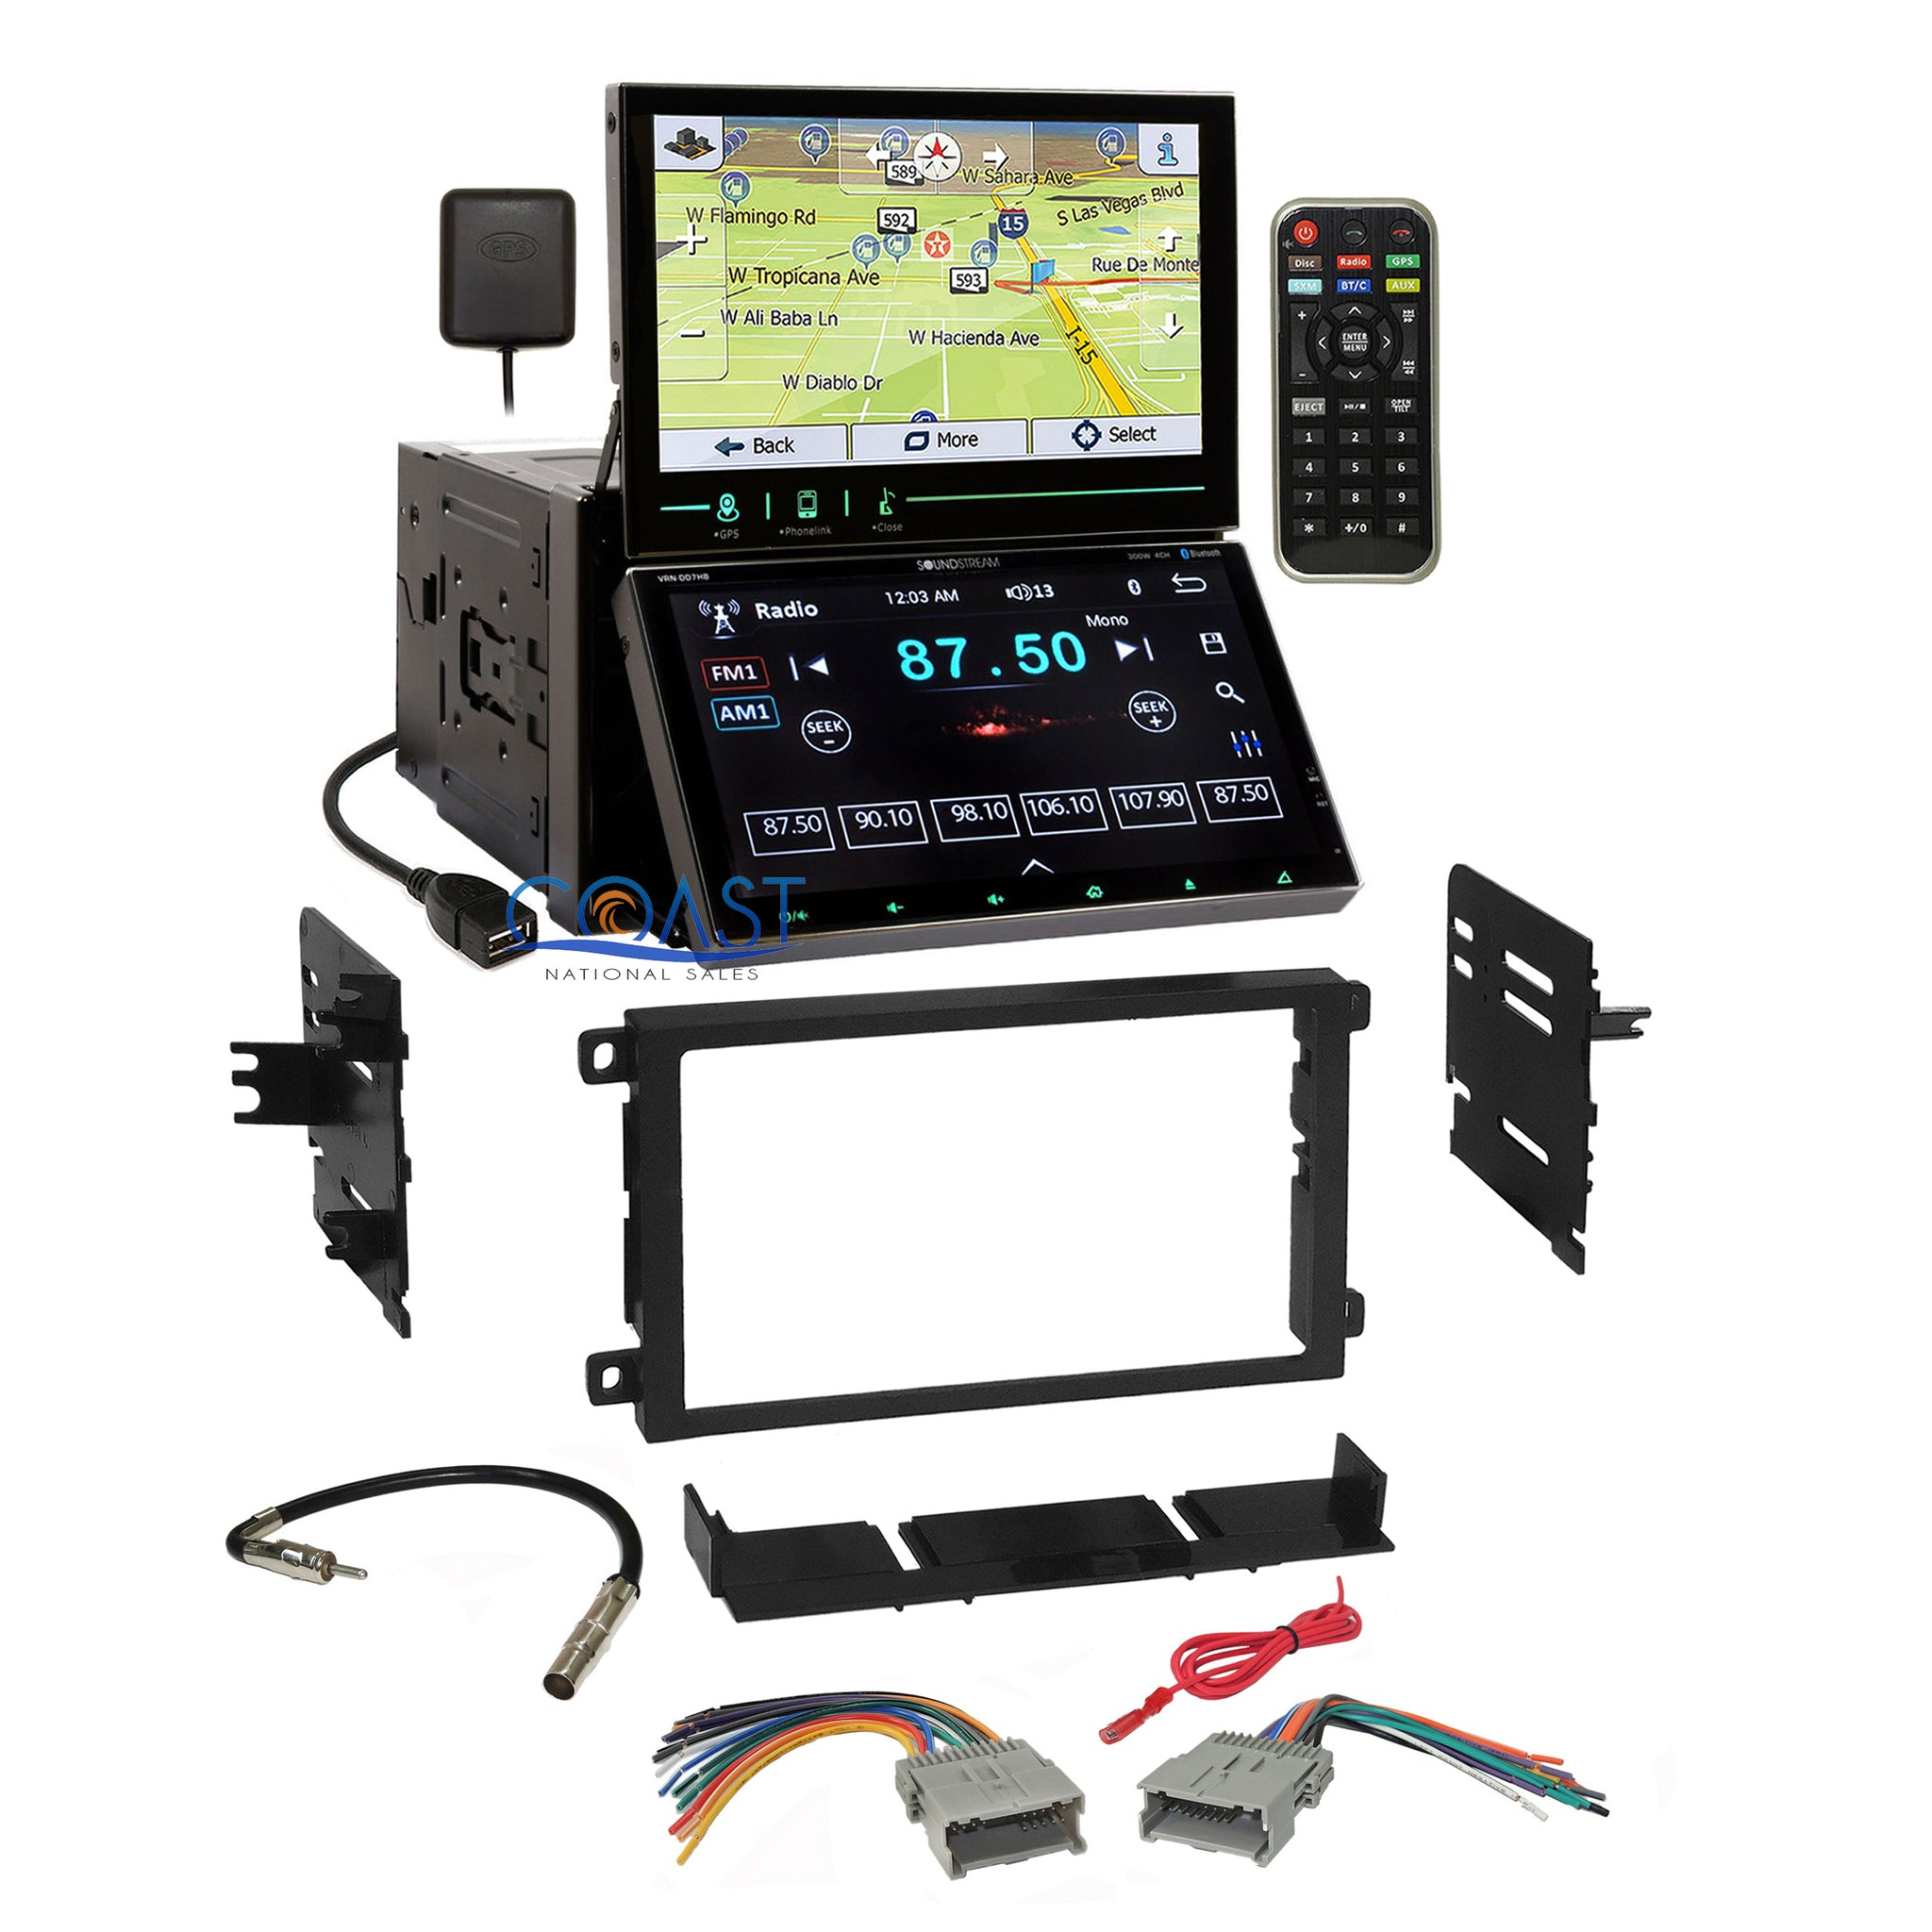 Soundstream 2 Screen DVD GPS Stereo Dash Kit Harness for 92+ ... on 1987 chevy dash harness, chevy suburban wire harness, 1971 chevelle dash harness, dash radio, 1967 chevrolet van dash harness, 99 firebird dash harness, dash gauges,